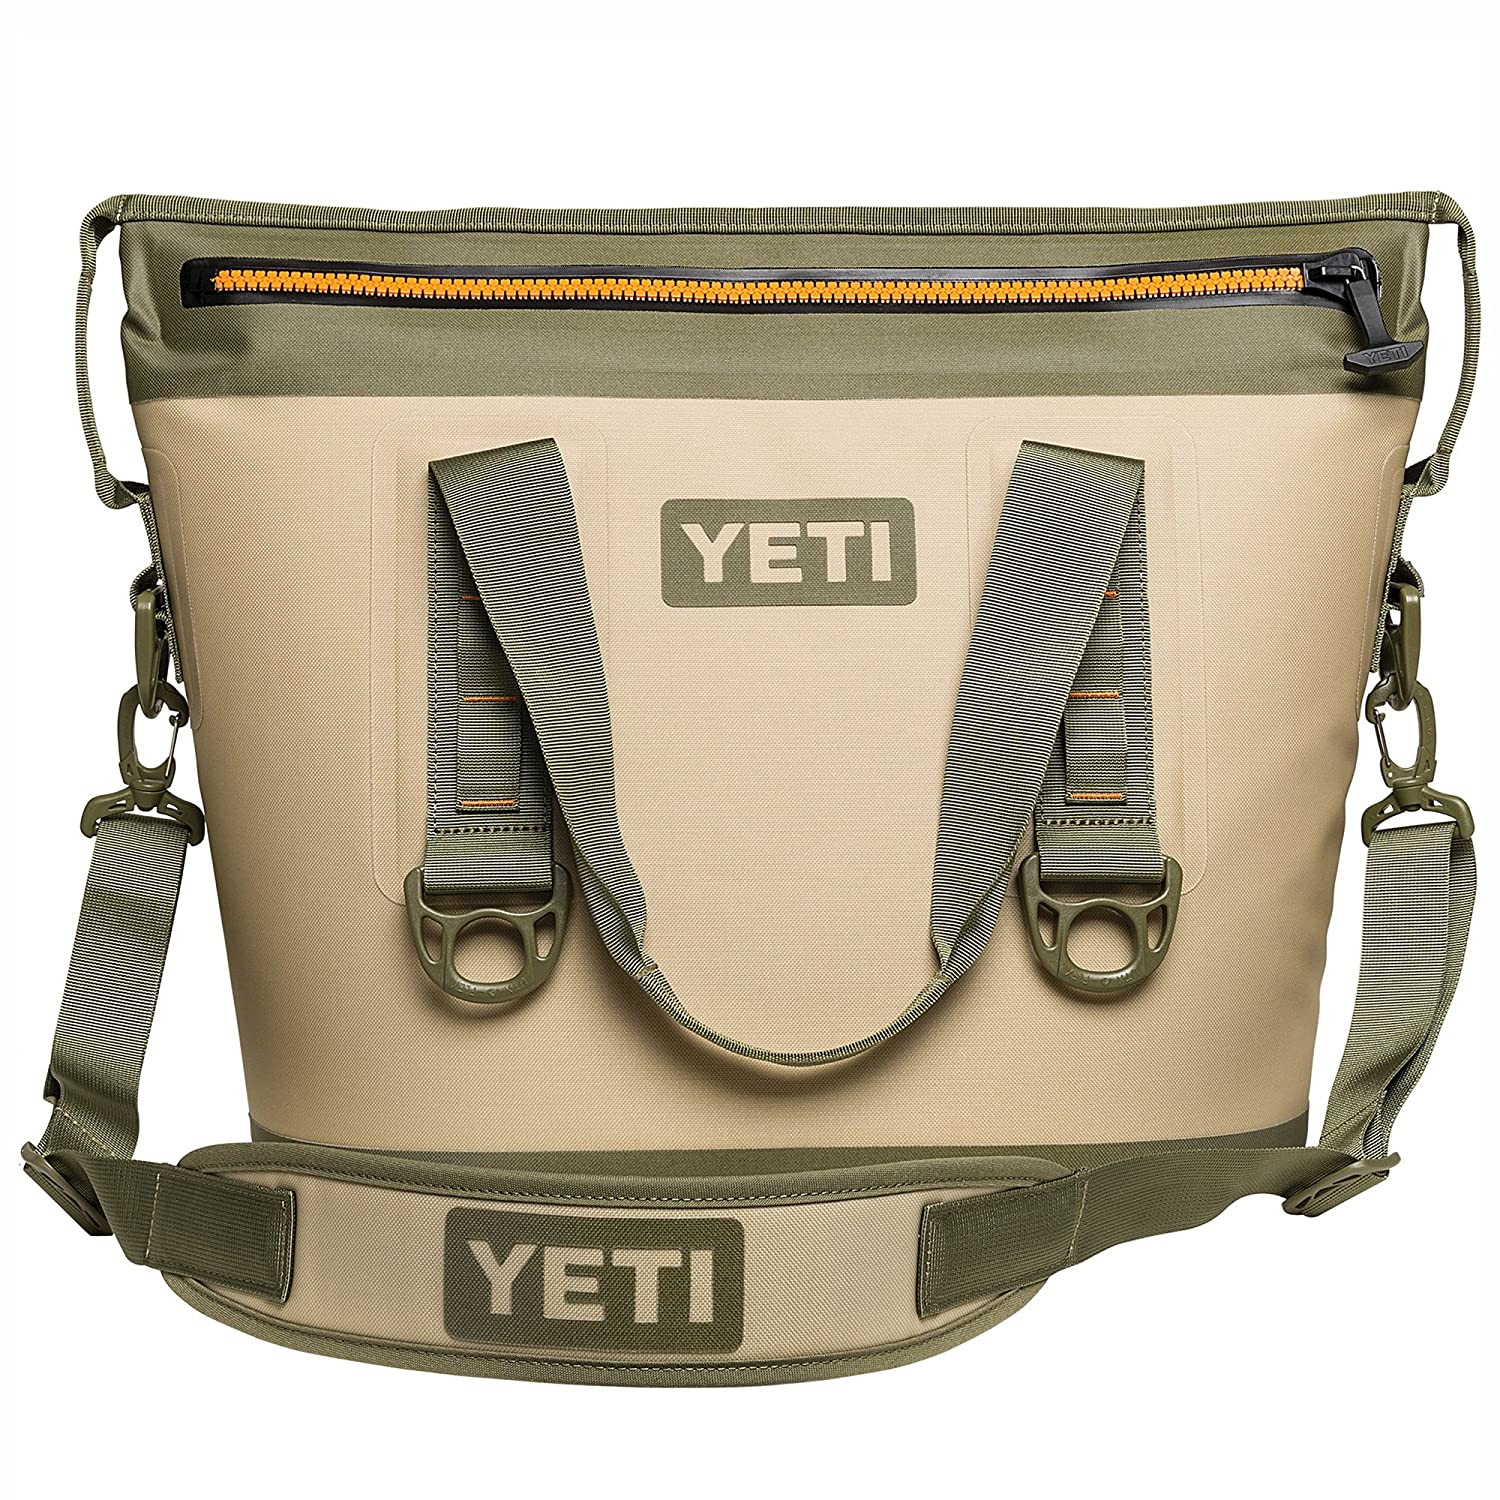 65cf099088d The 6 Best Yeti Coolers on Amazon | Top Bags with Reviews & Reports